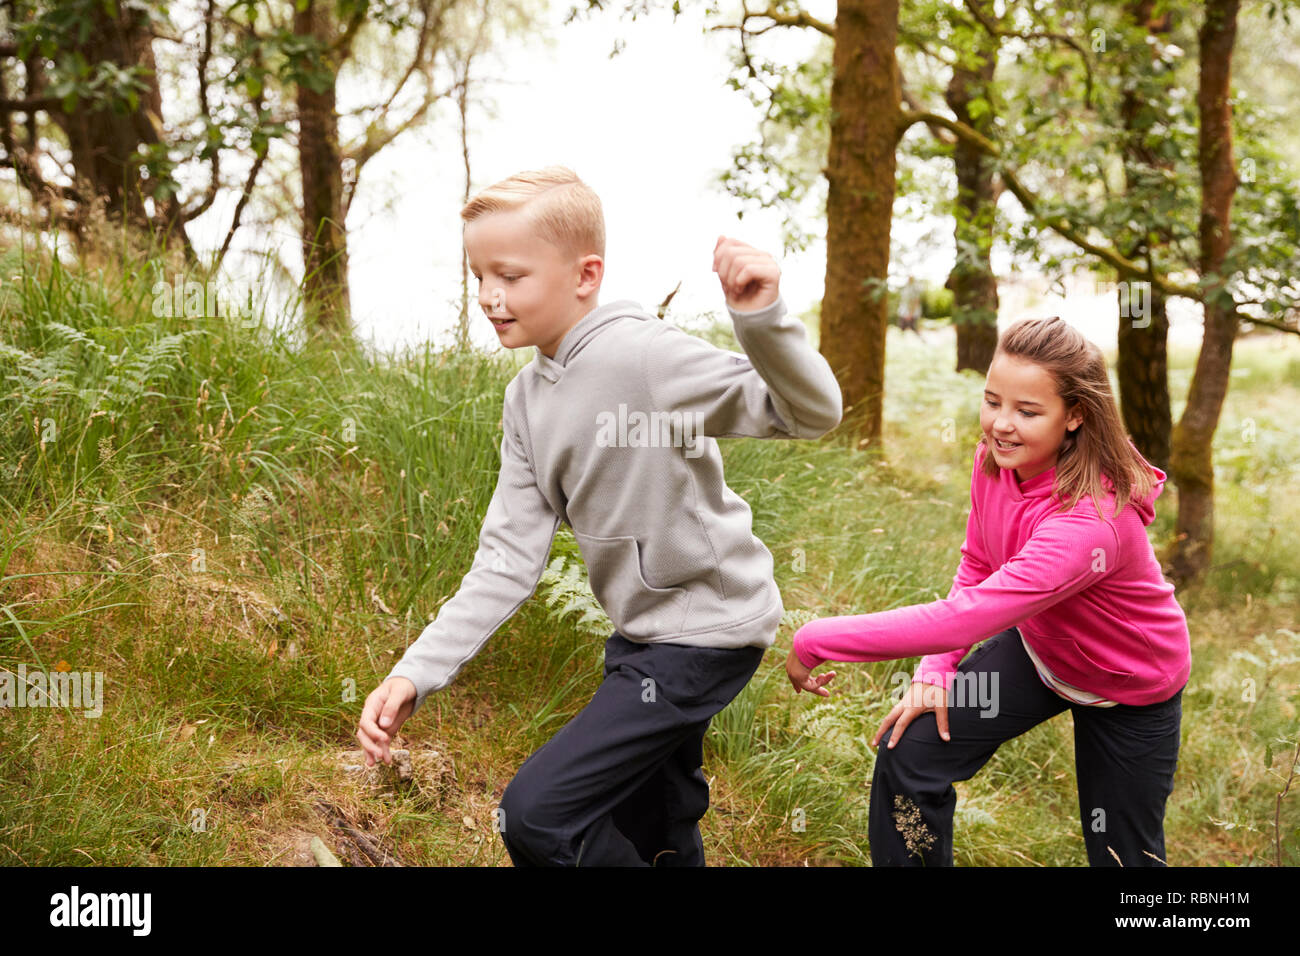 Two children walking together through a forest by tall grass, side view - Stock Image